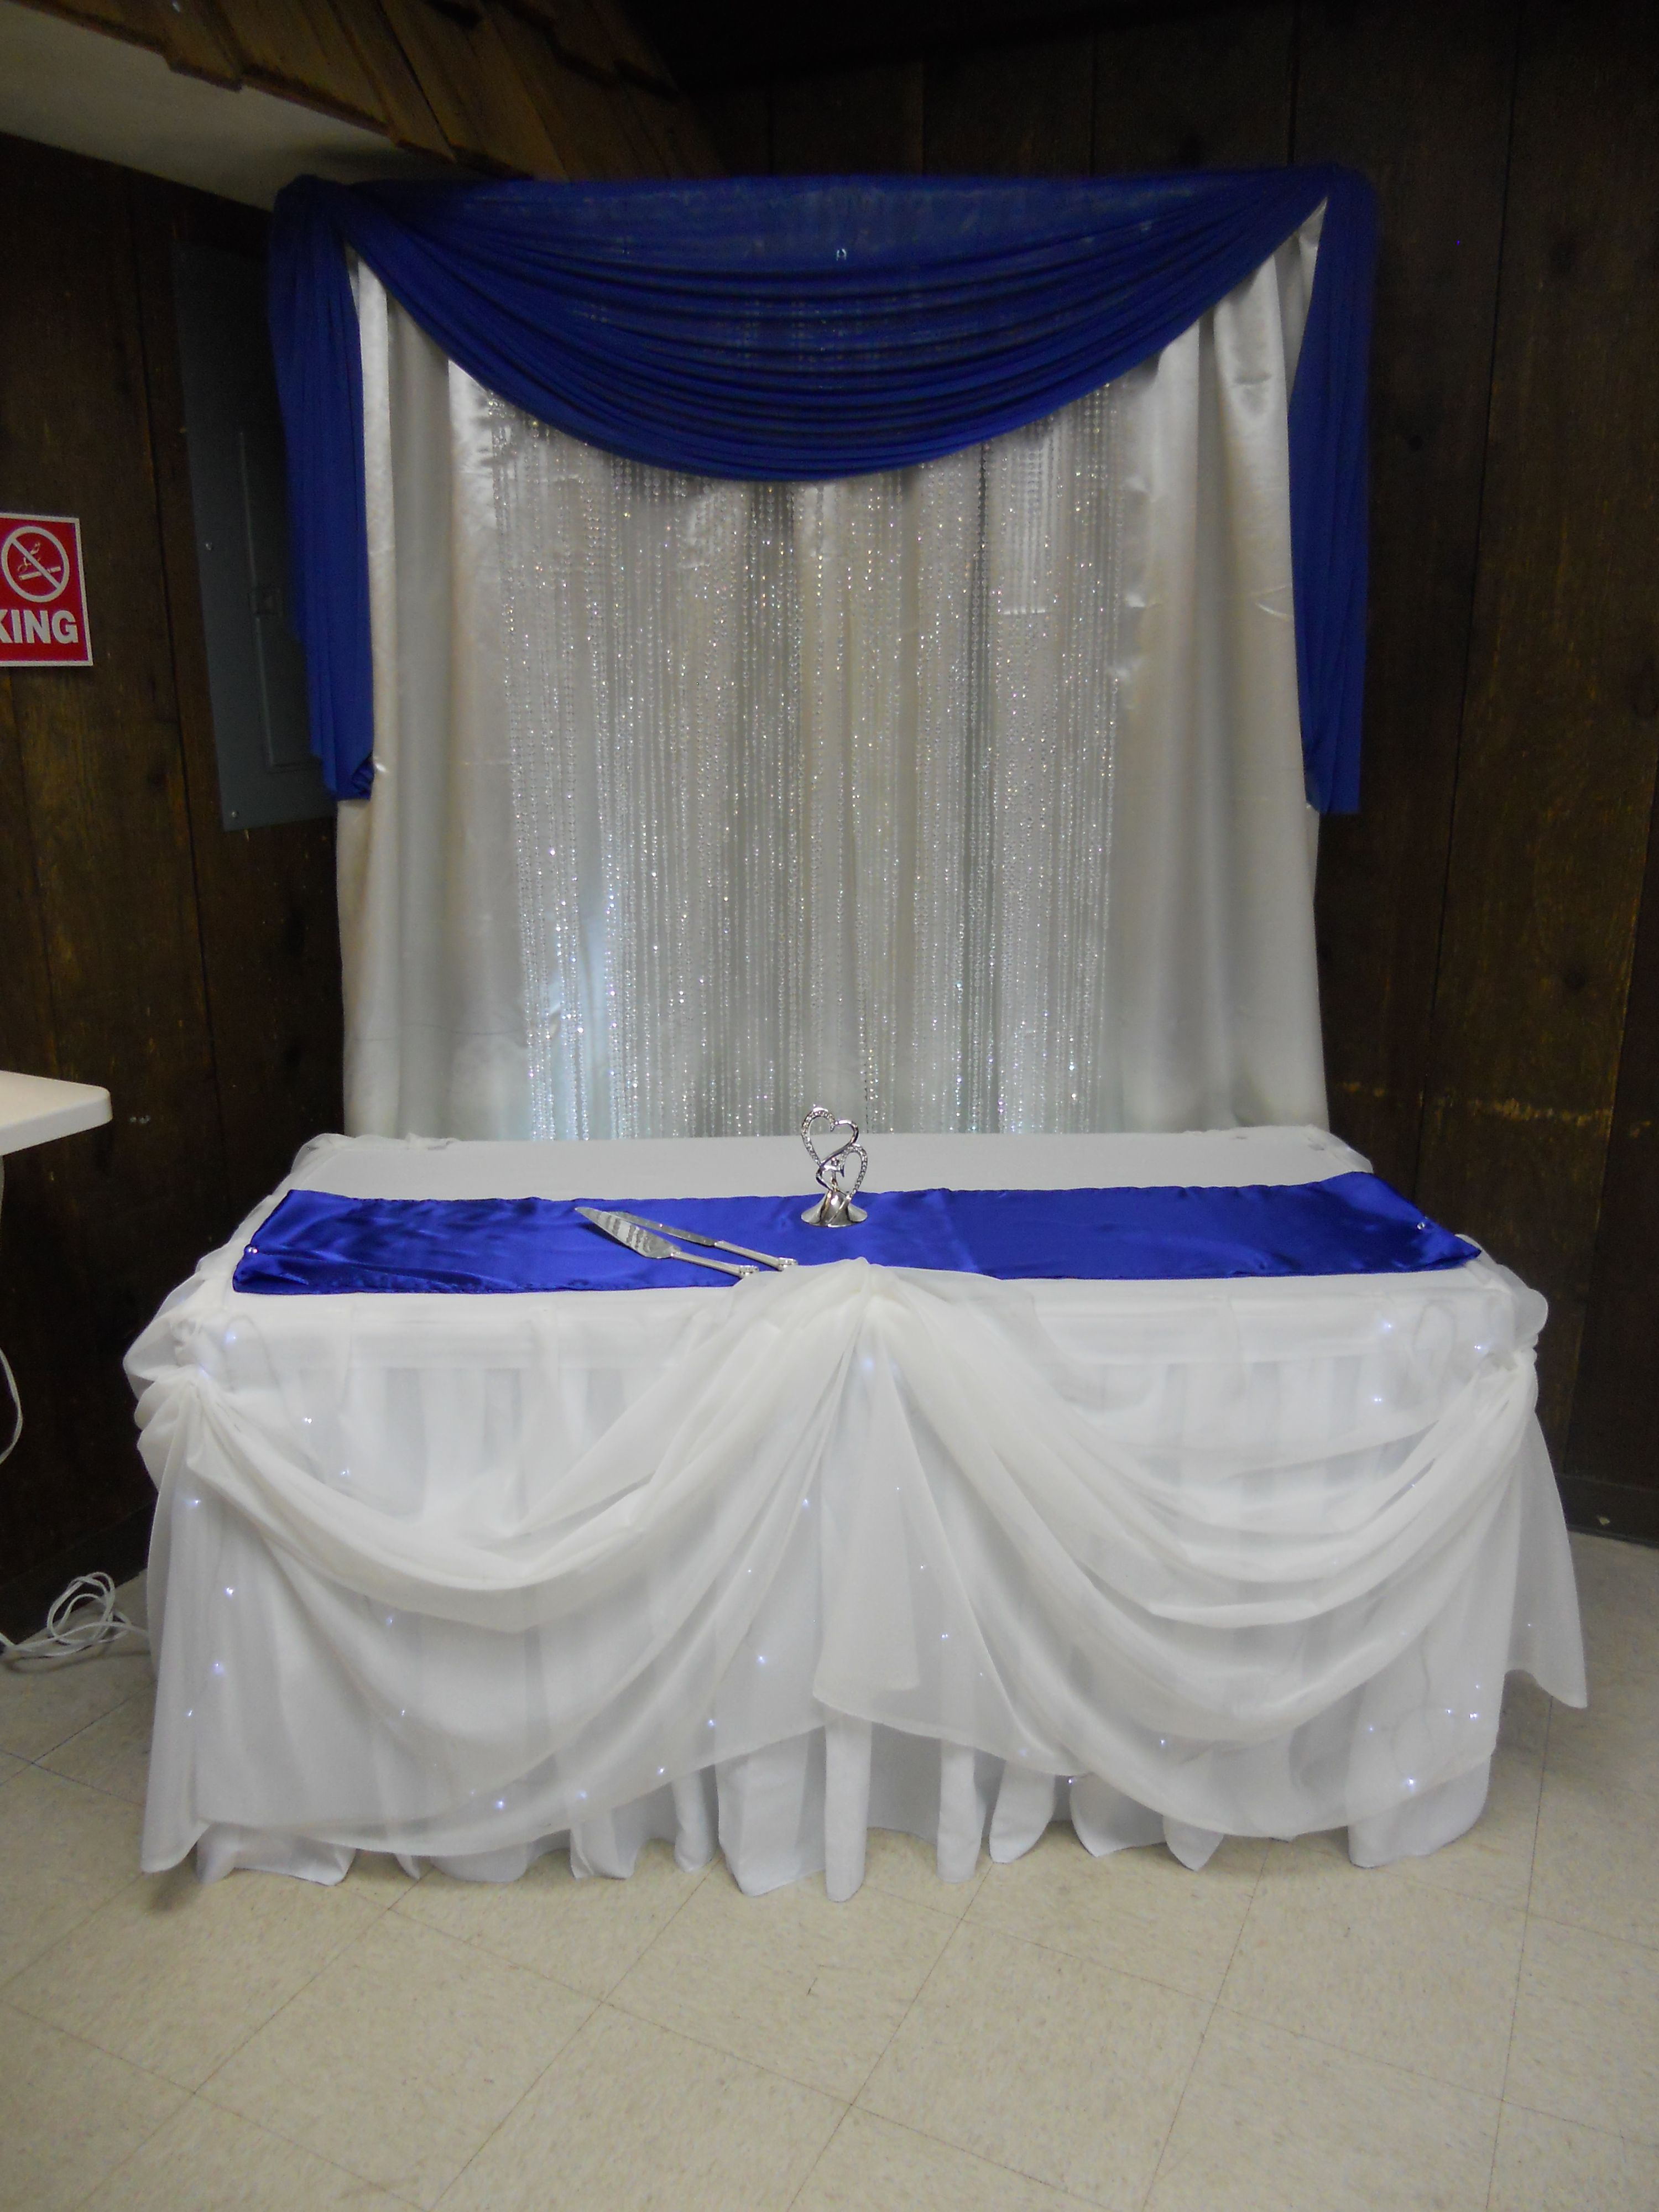 Cake Table With Backdrop Royal Blue Wedding Theme Blue Themed